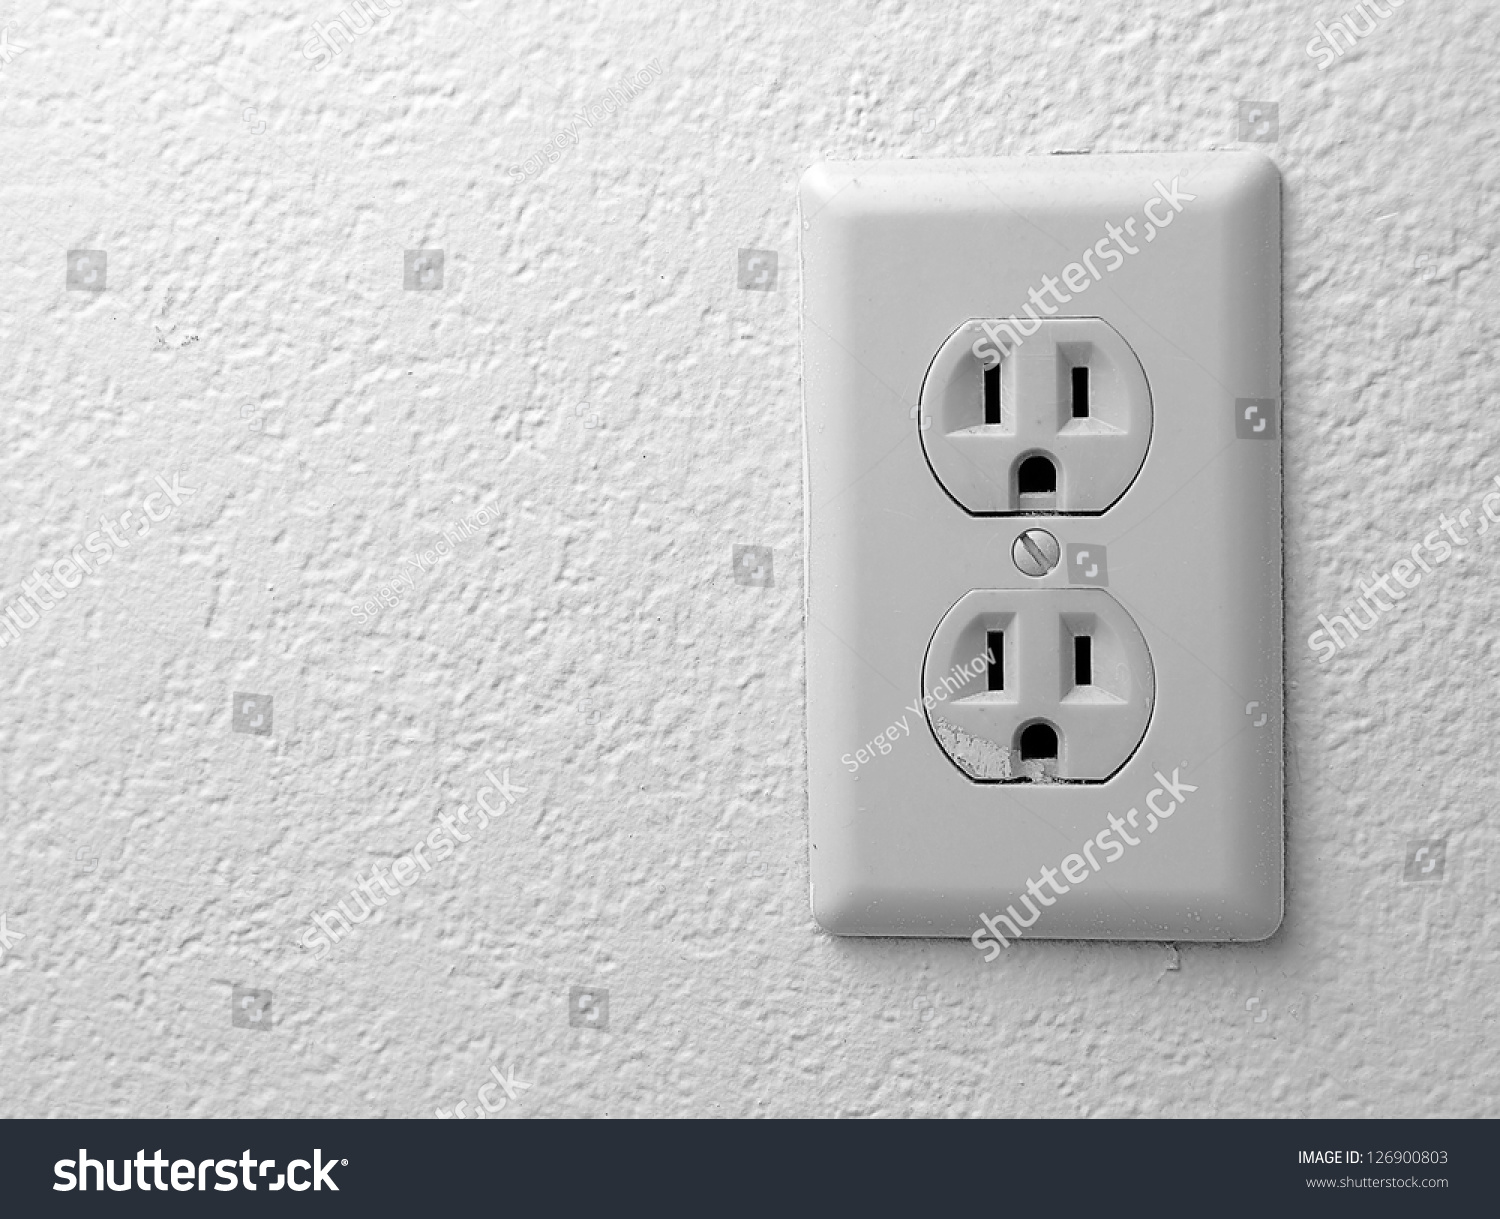 Electric Outlet On Wall Covered Wallpaper Stock Photo